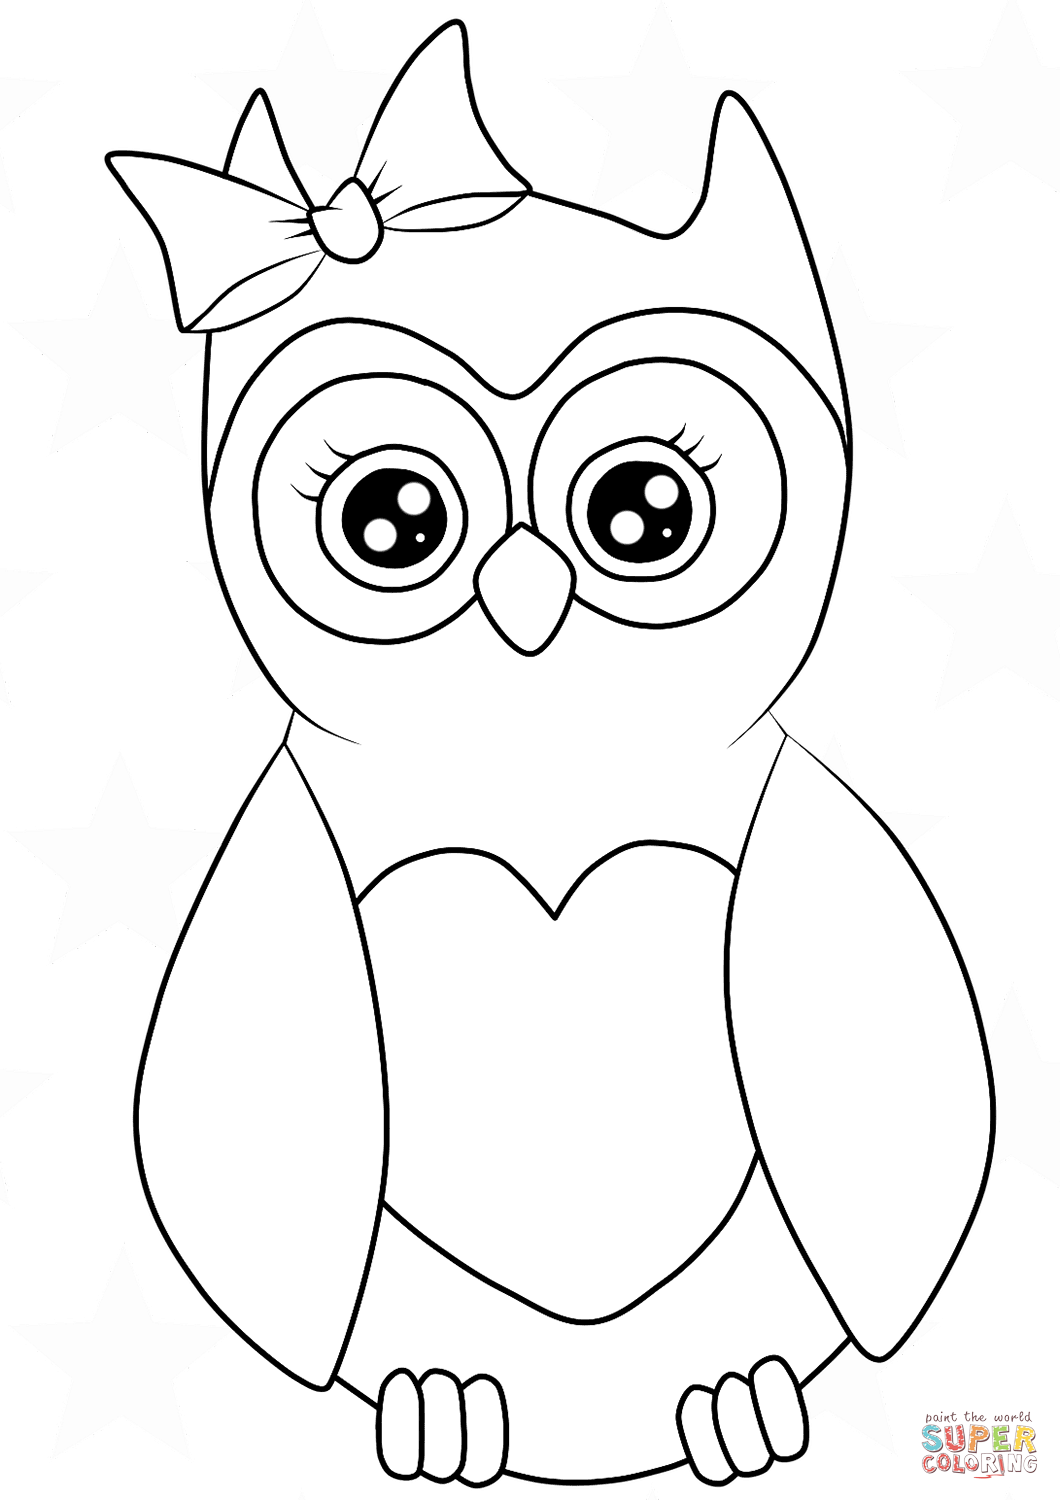 owl coloring page printable cute owl pages coloring pages owl coloring page printable